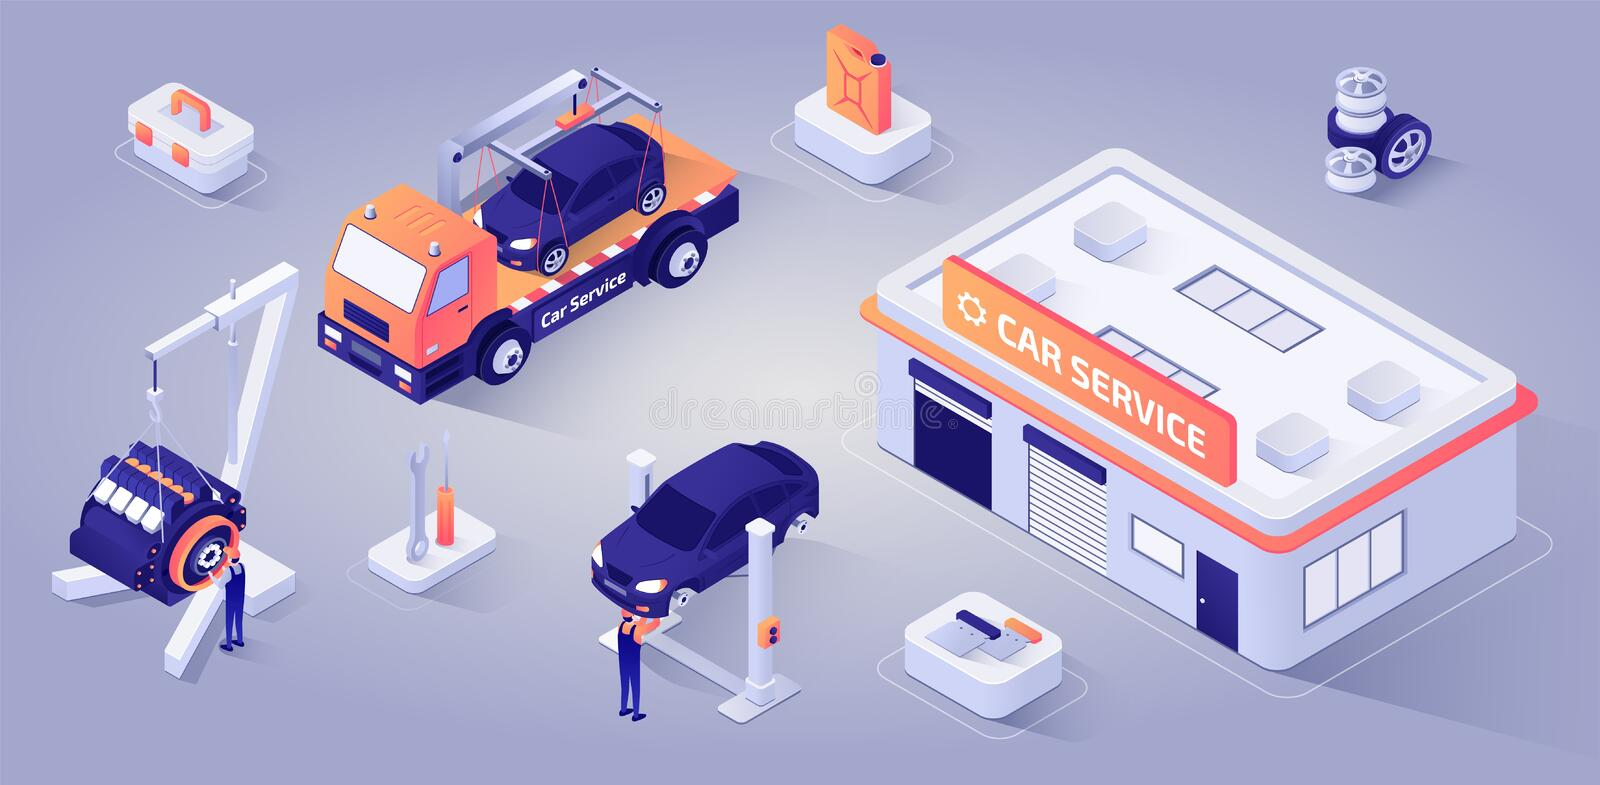 Car Service Building with Mechanics at Work Vector vector illustration